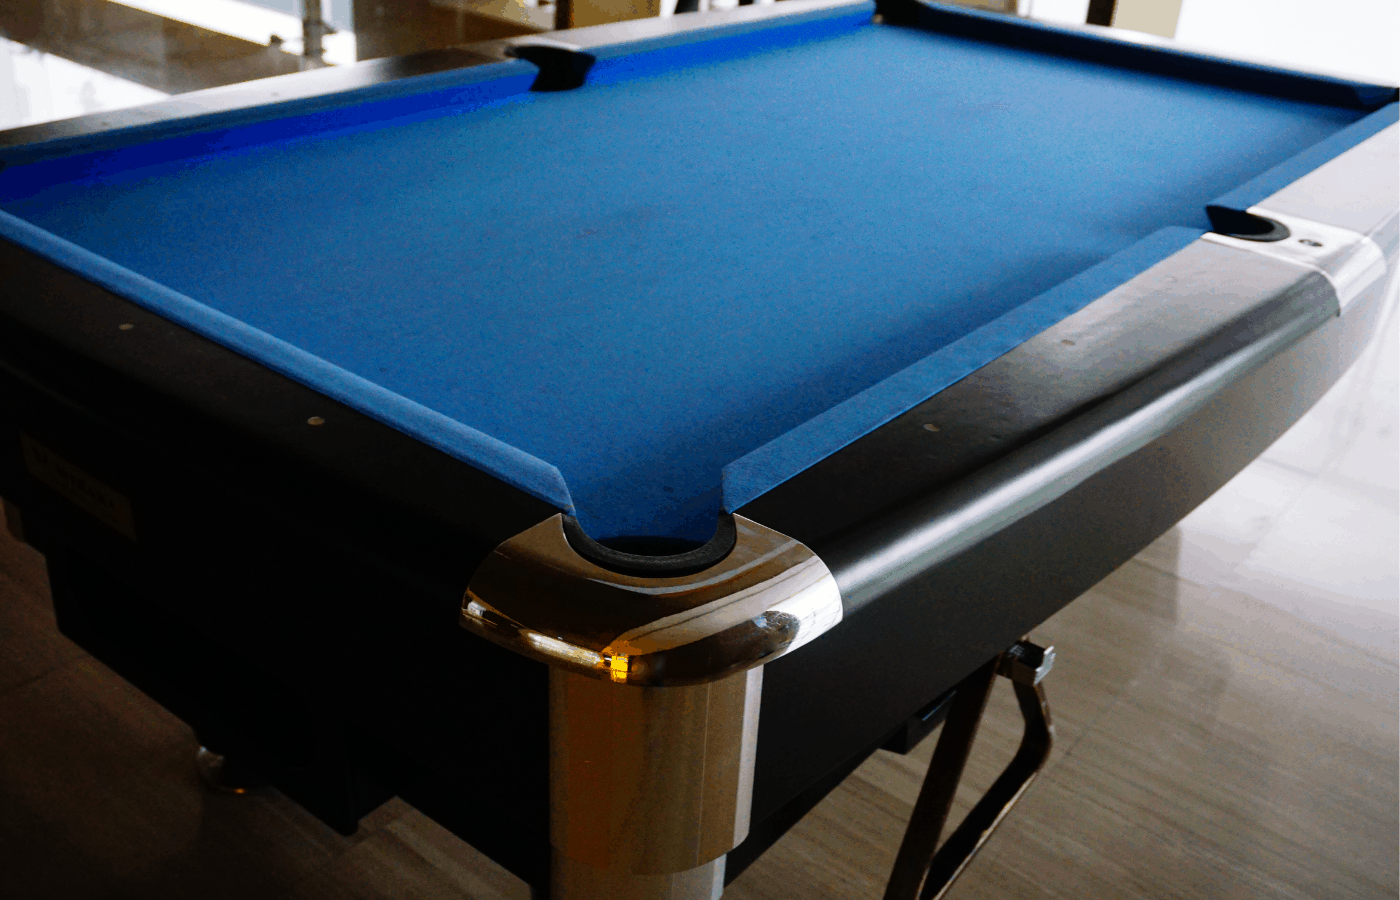 Can You Sand Pool Table Slate Indoorgamebunker - How To Move A Slate Pool Table In One Piece